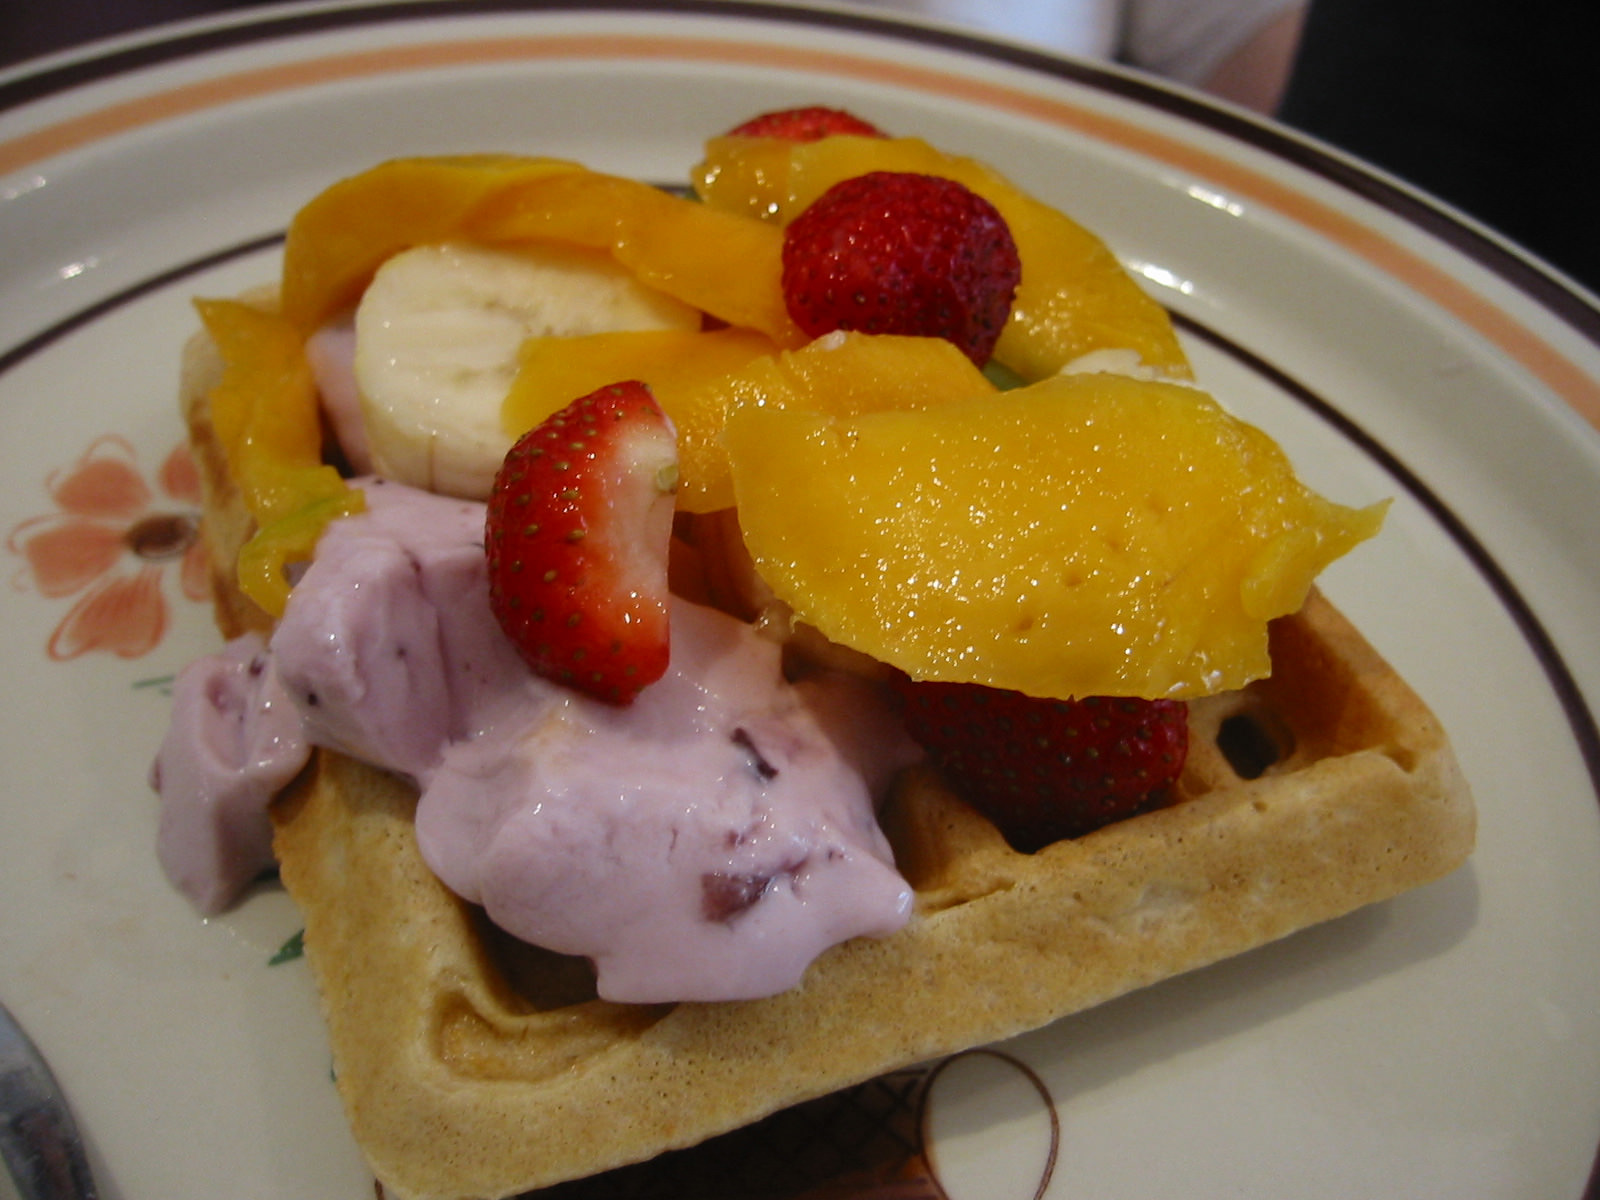 My aunt's waffle